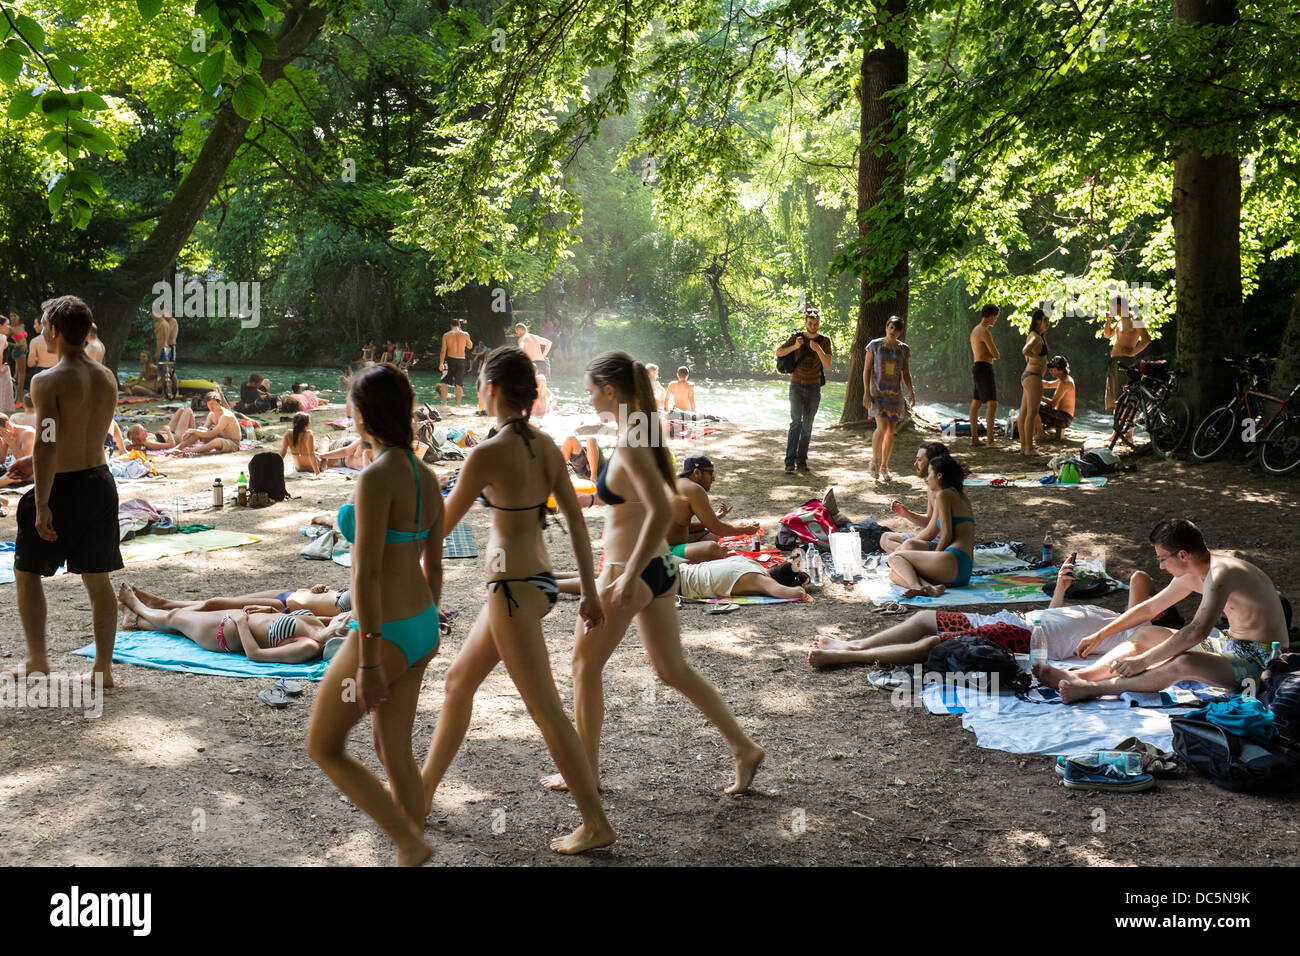 English garden in Munich on a hot summer day, Germany - Stock Image